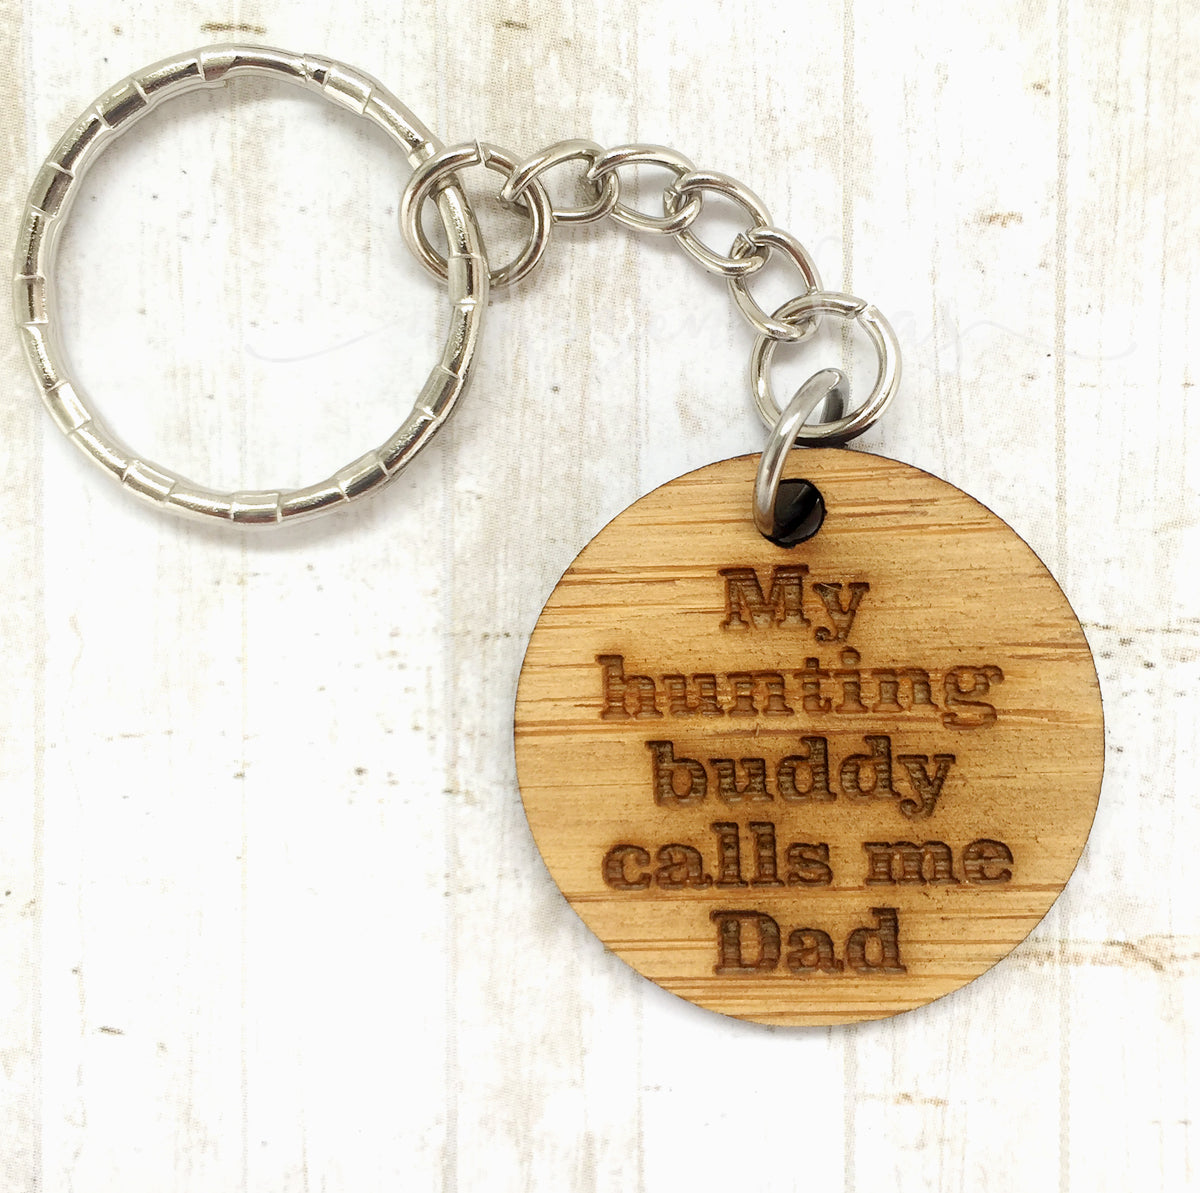 Tag Keyring - My hunting buddy calls me Dad